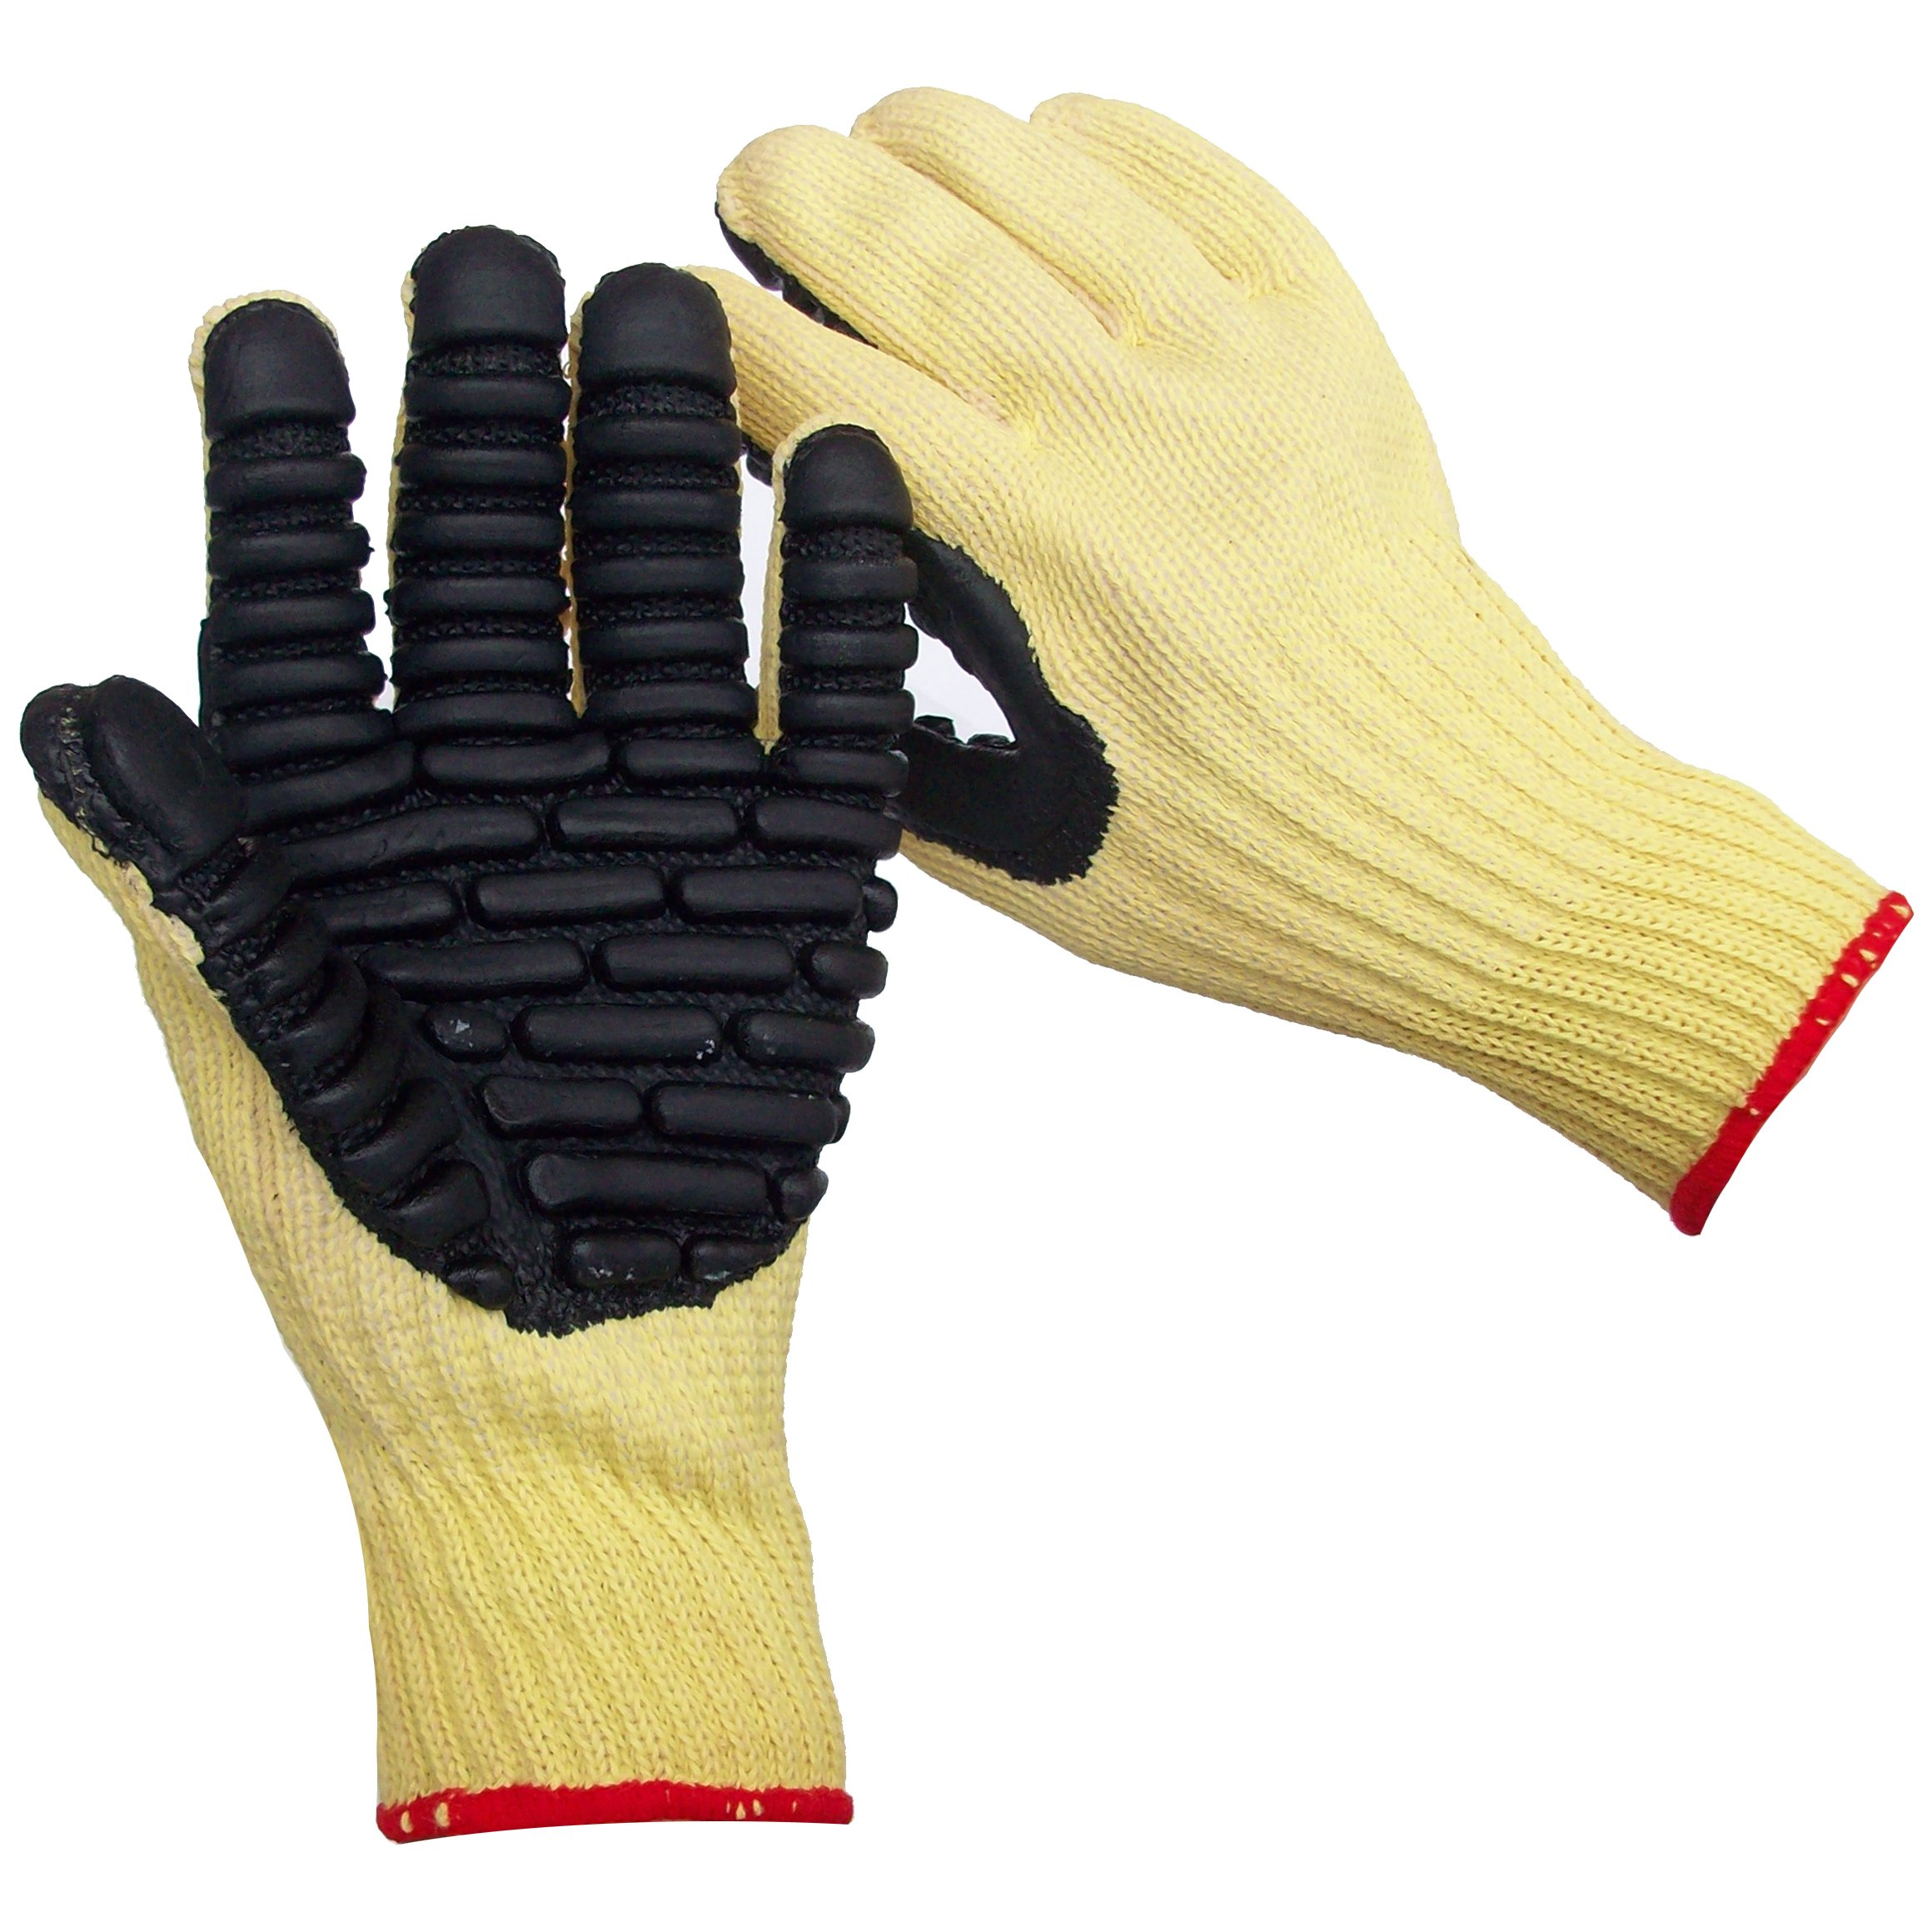 Impacto VI4740 Blade Anti-Vibration Anti Slash Glove, Yellow